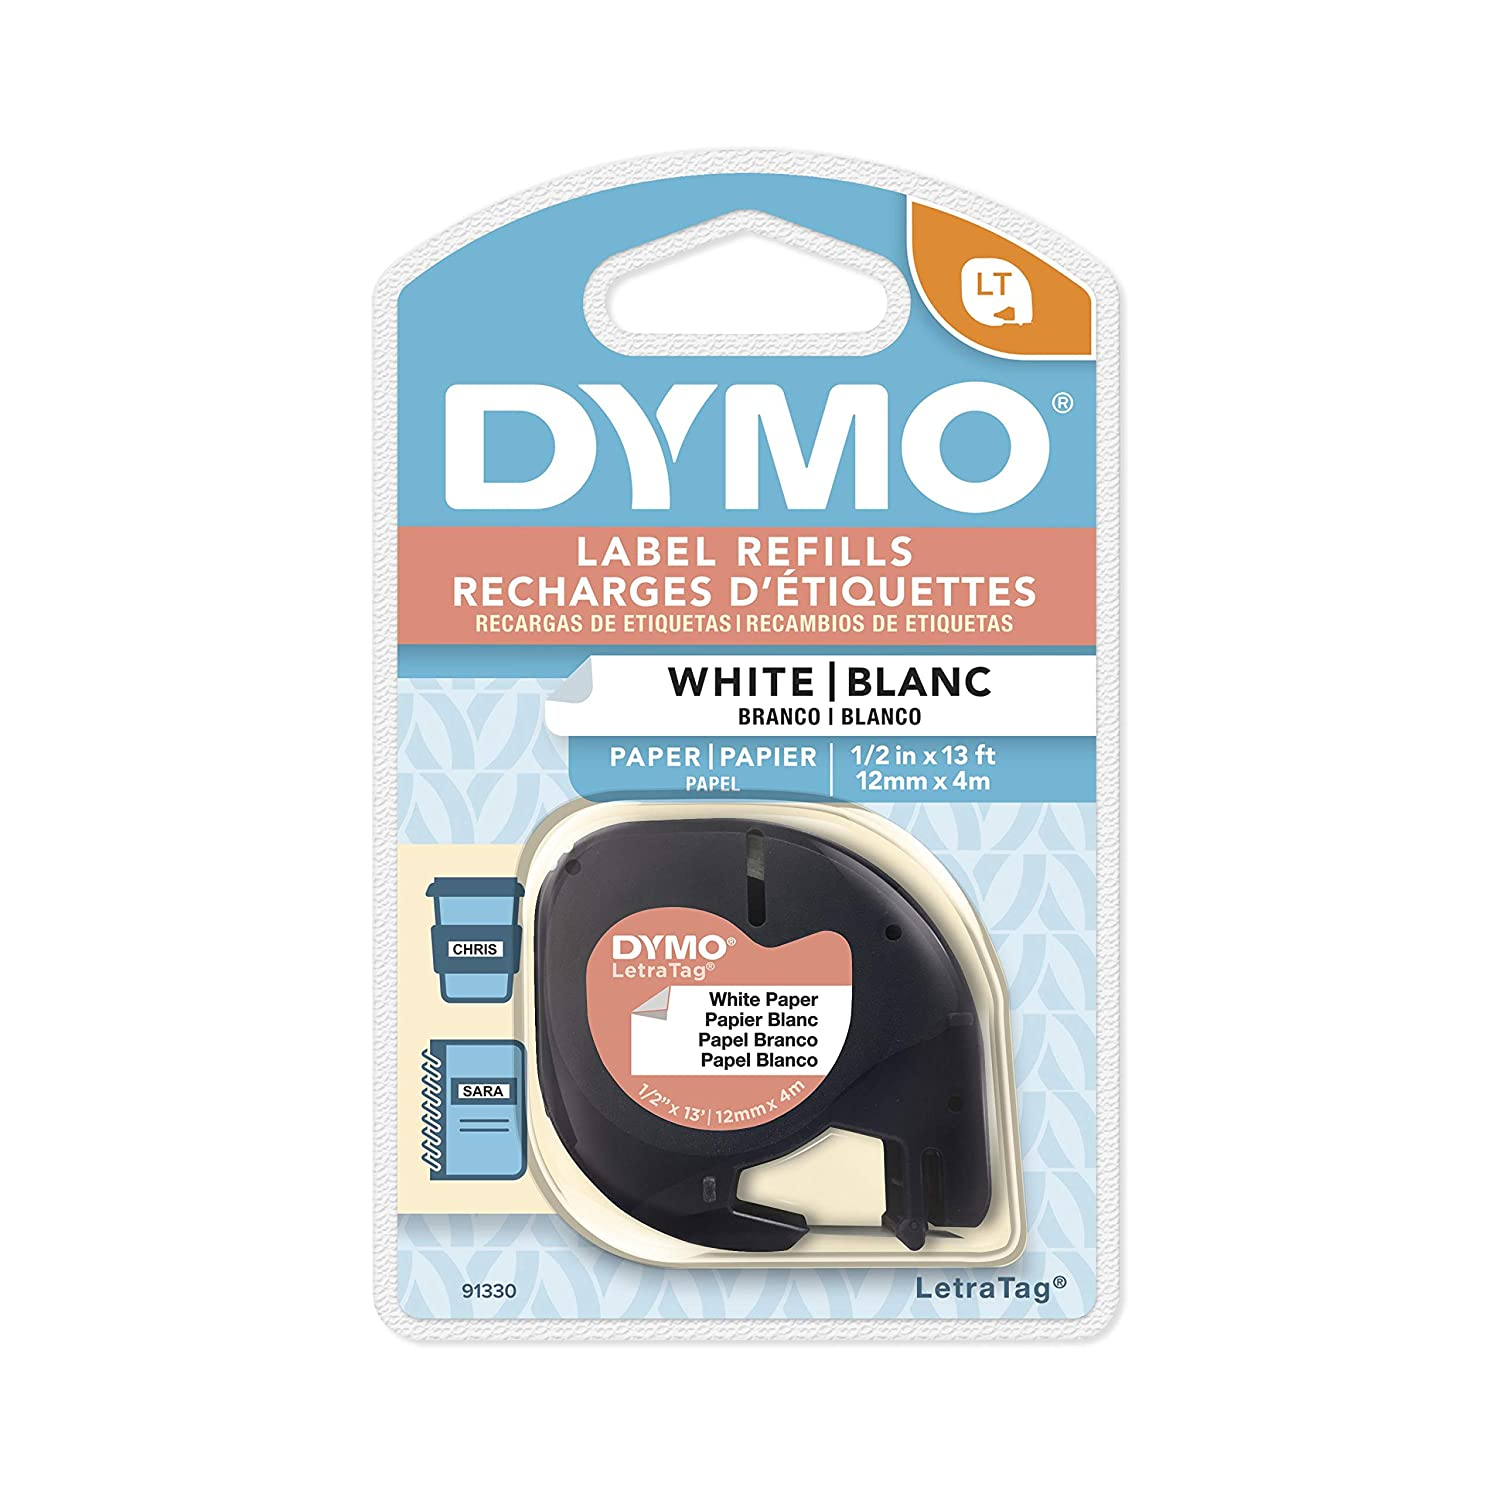 """DYMO LetraTag Labeling Tape for LetraTag Label Makers, Black print on White paper, 1/2"""" W x 13' L, 1 cassette (91330)"""